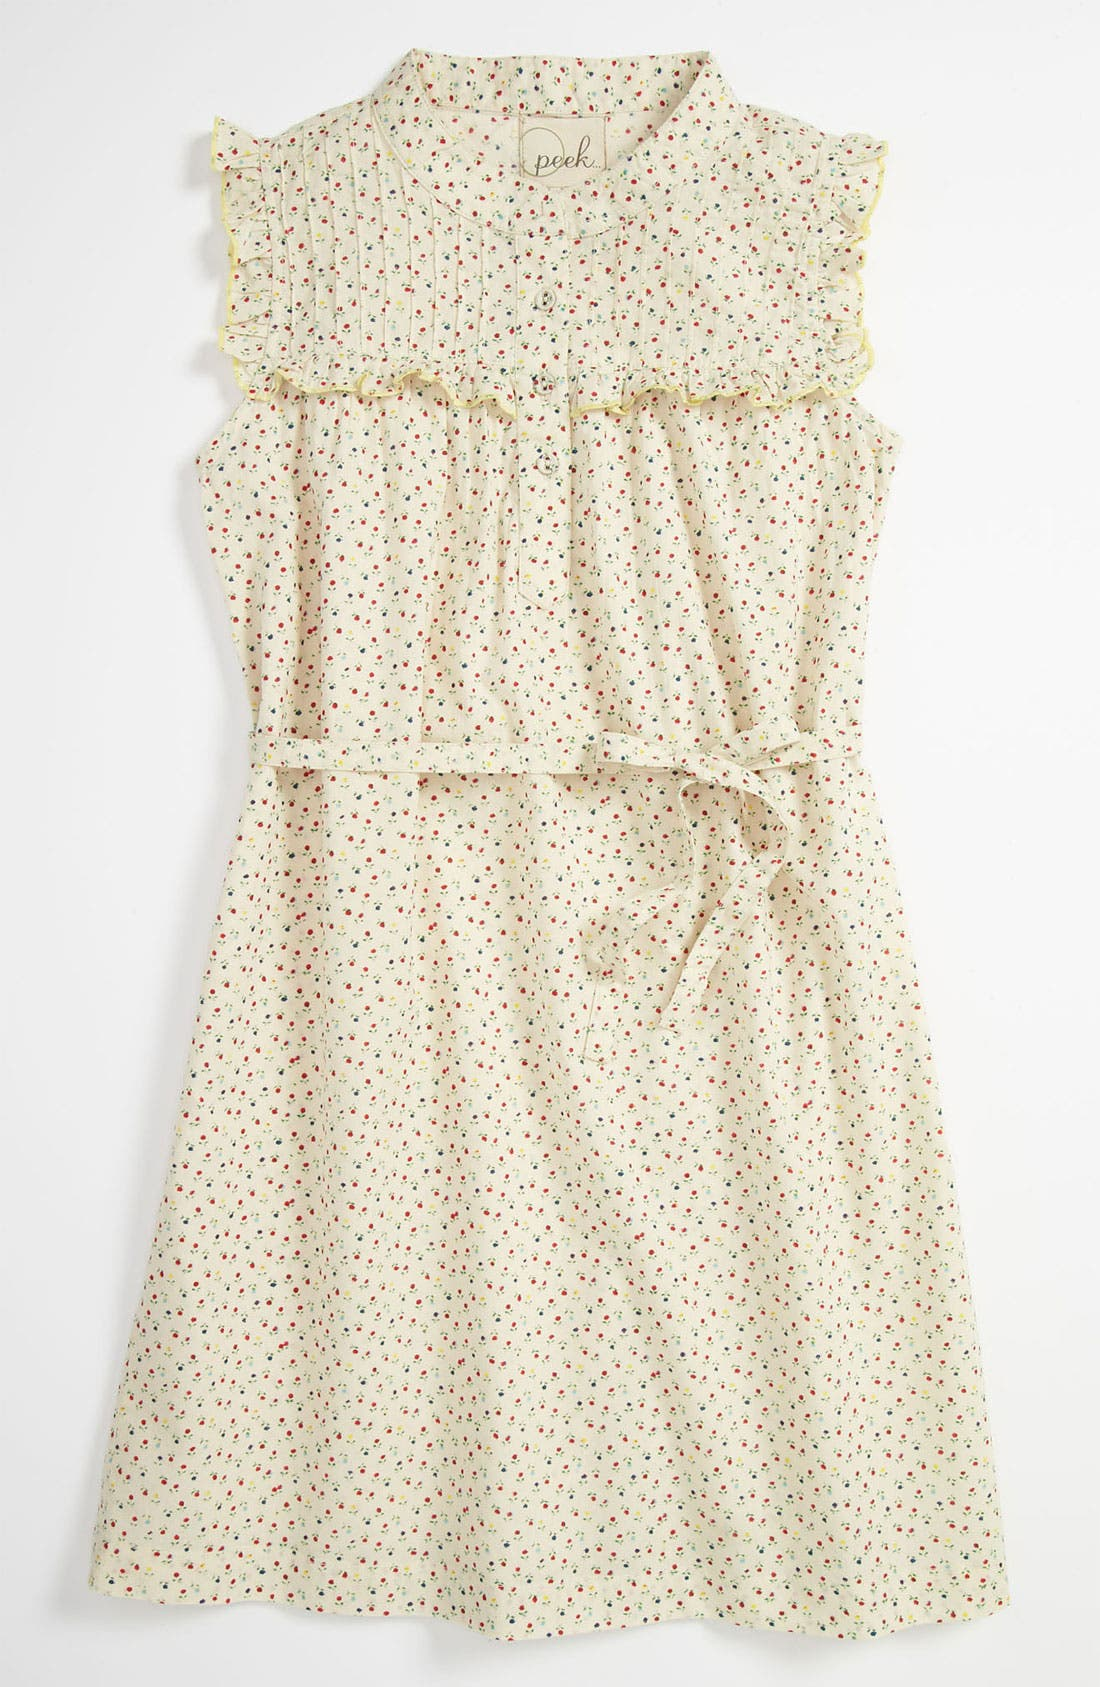 Main Image - Peek 'Lily' Dress (Toddler, Little Girls & Big Girls)